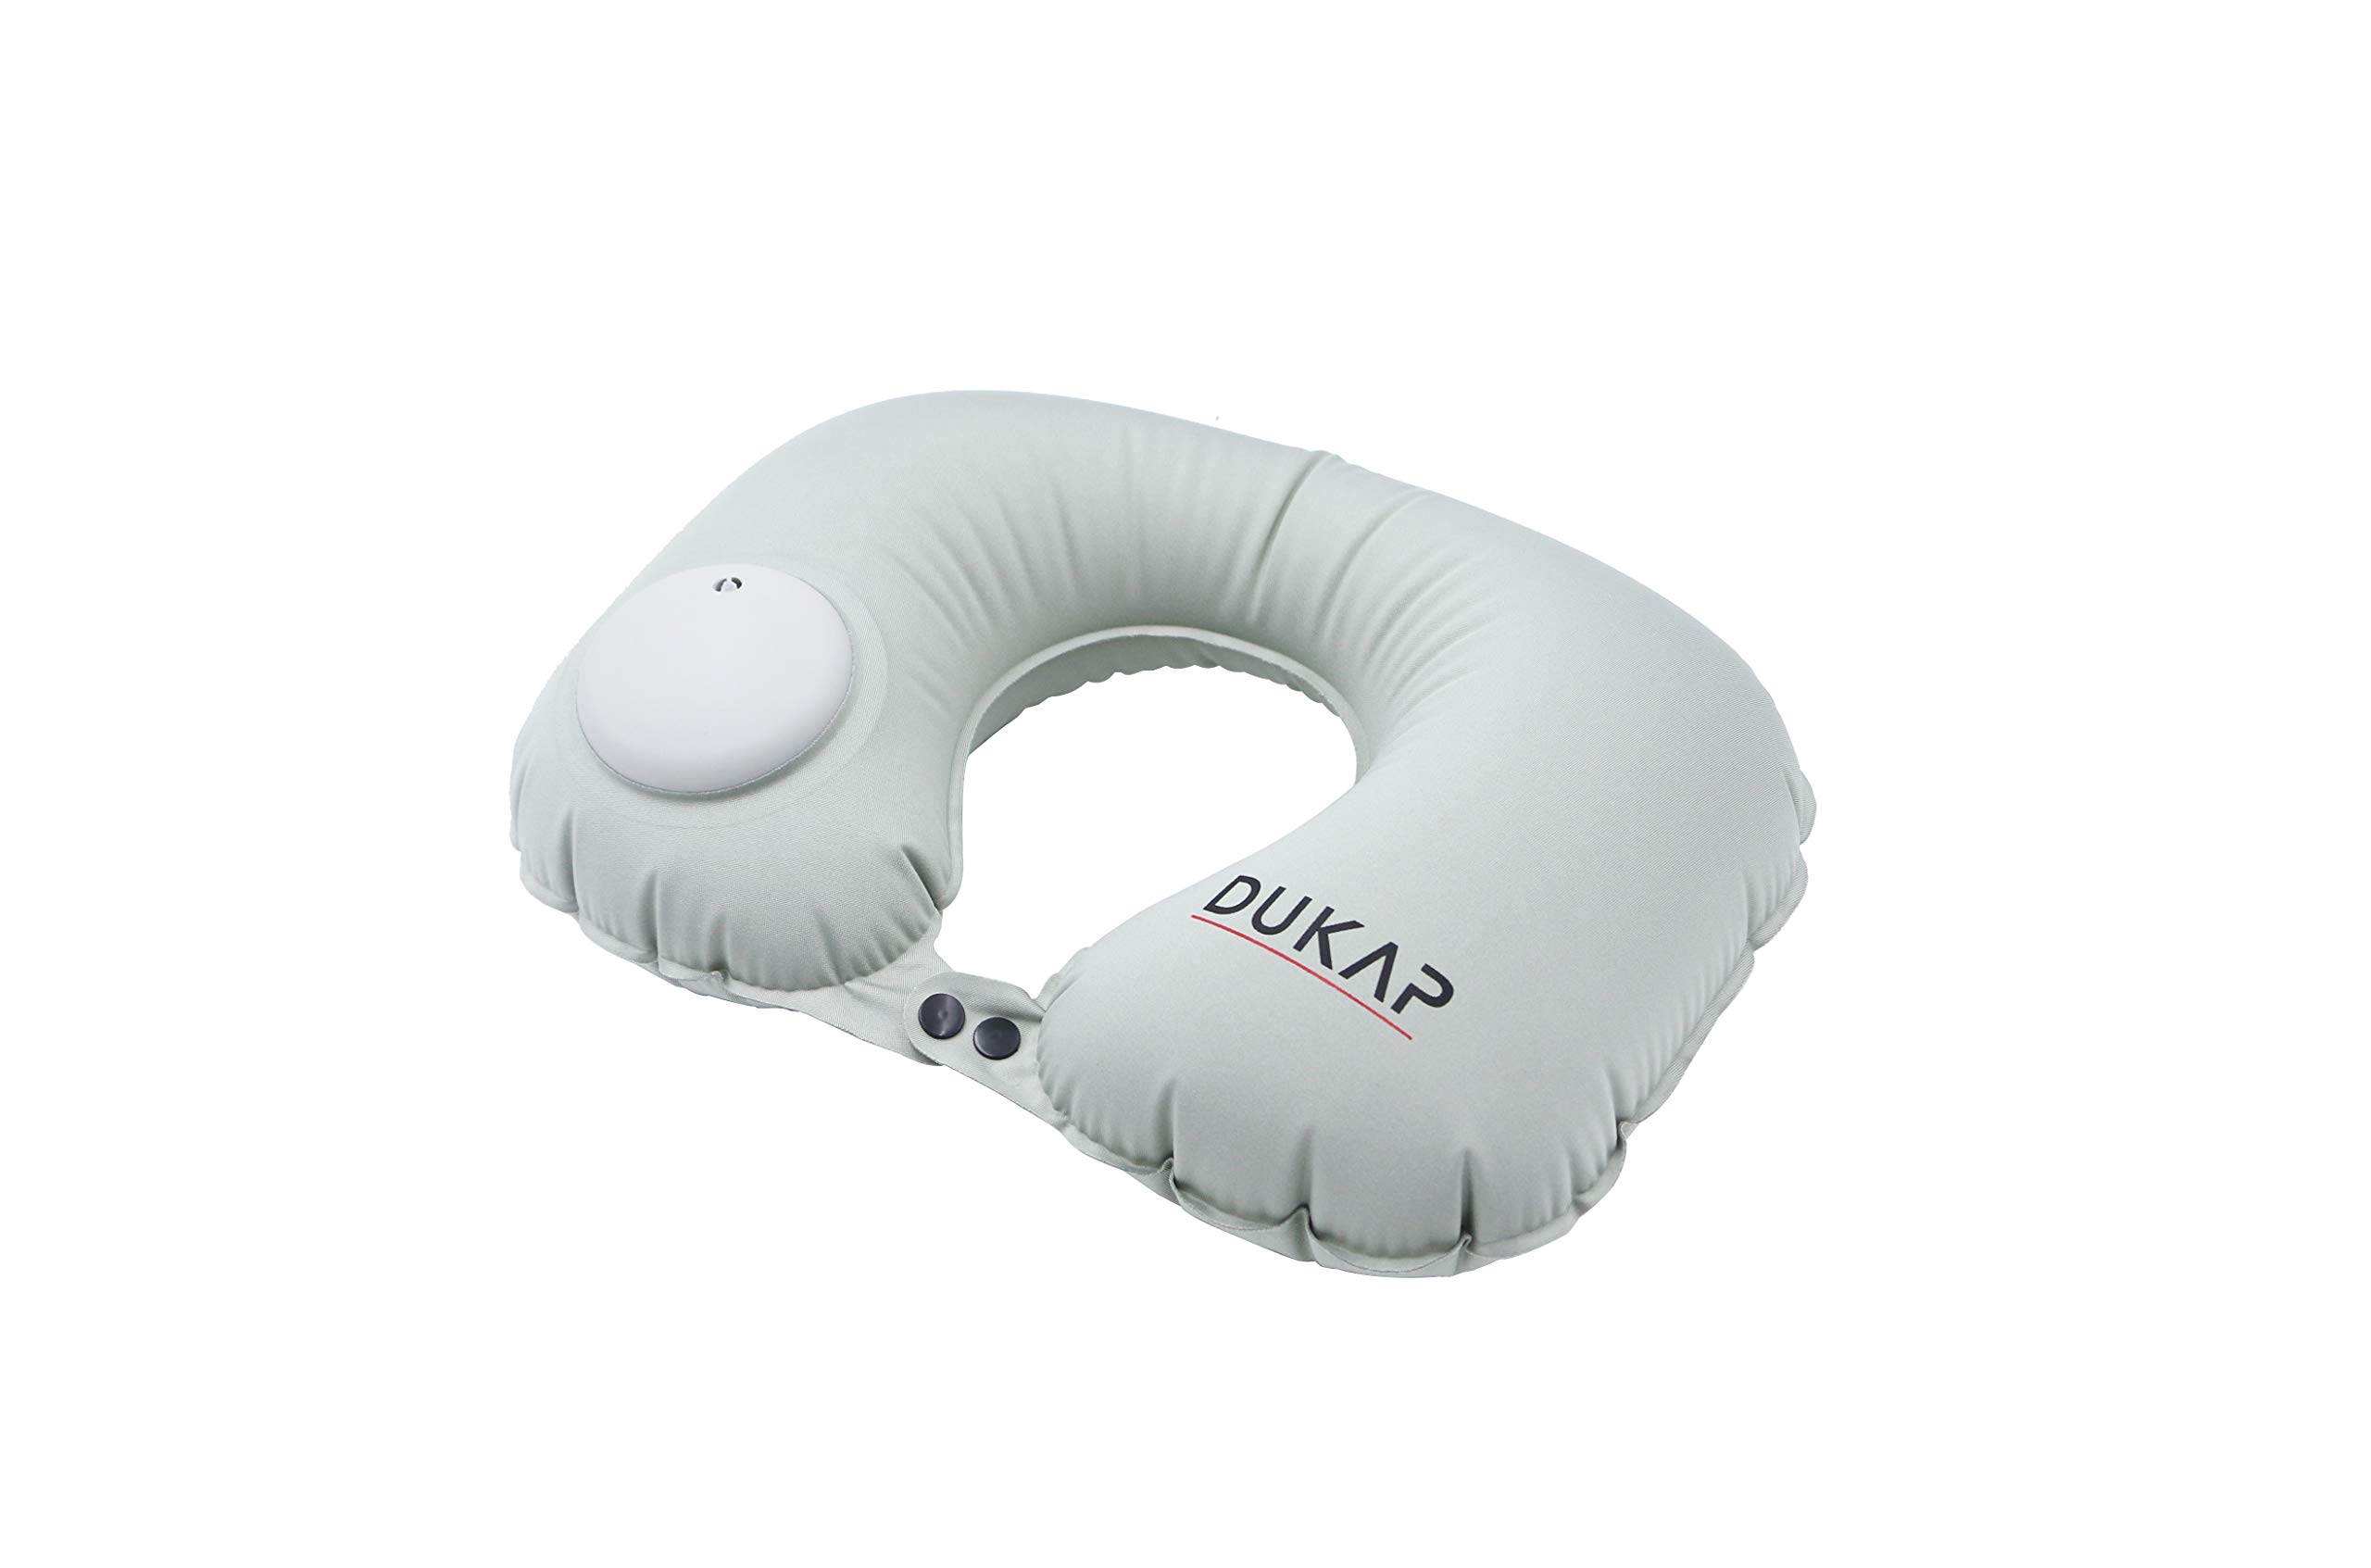 DUKAP Travel Accessories Travel Neck Pillow - Auto Inflatable Air Pump - My Pillow for Neck Support - The Perfect Airplane Travel Cervical Pillow - Easy to Bring in Any Travel Bag or Backpack -